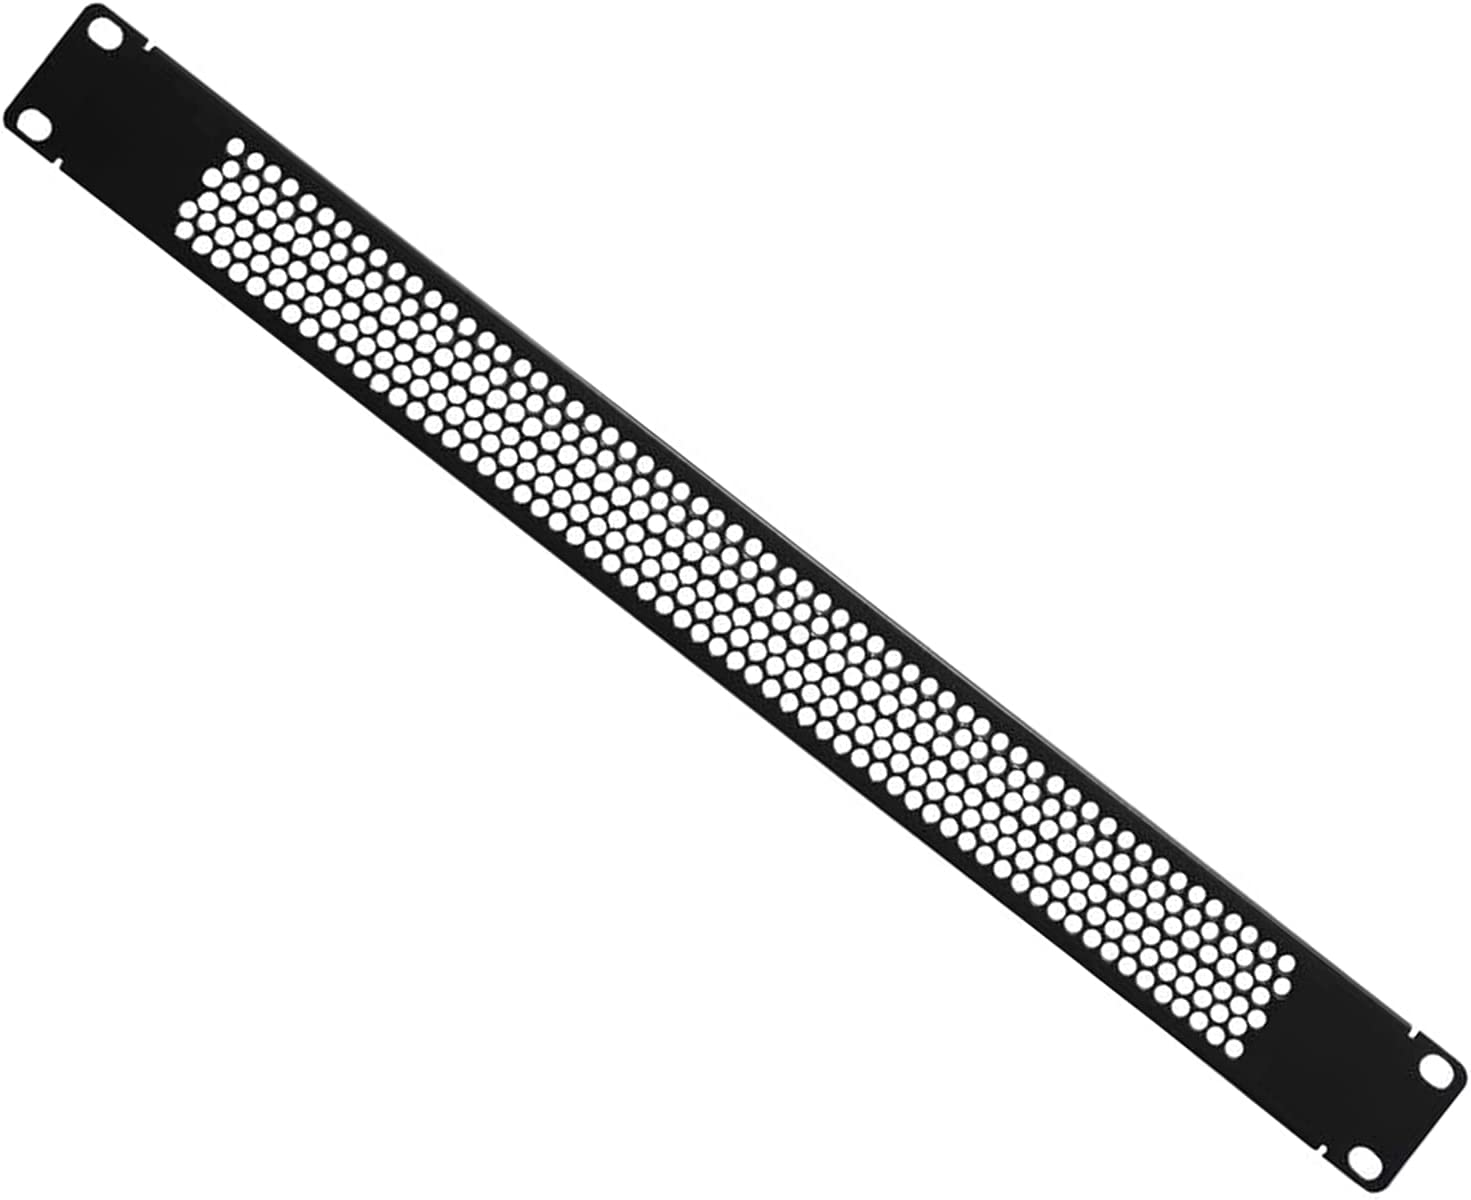 1U Blank Rack Mount Panel partition with Vent Holes, Used in 19-inch Server Network Rack Chassis or Cabinet, Black